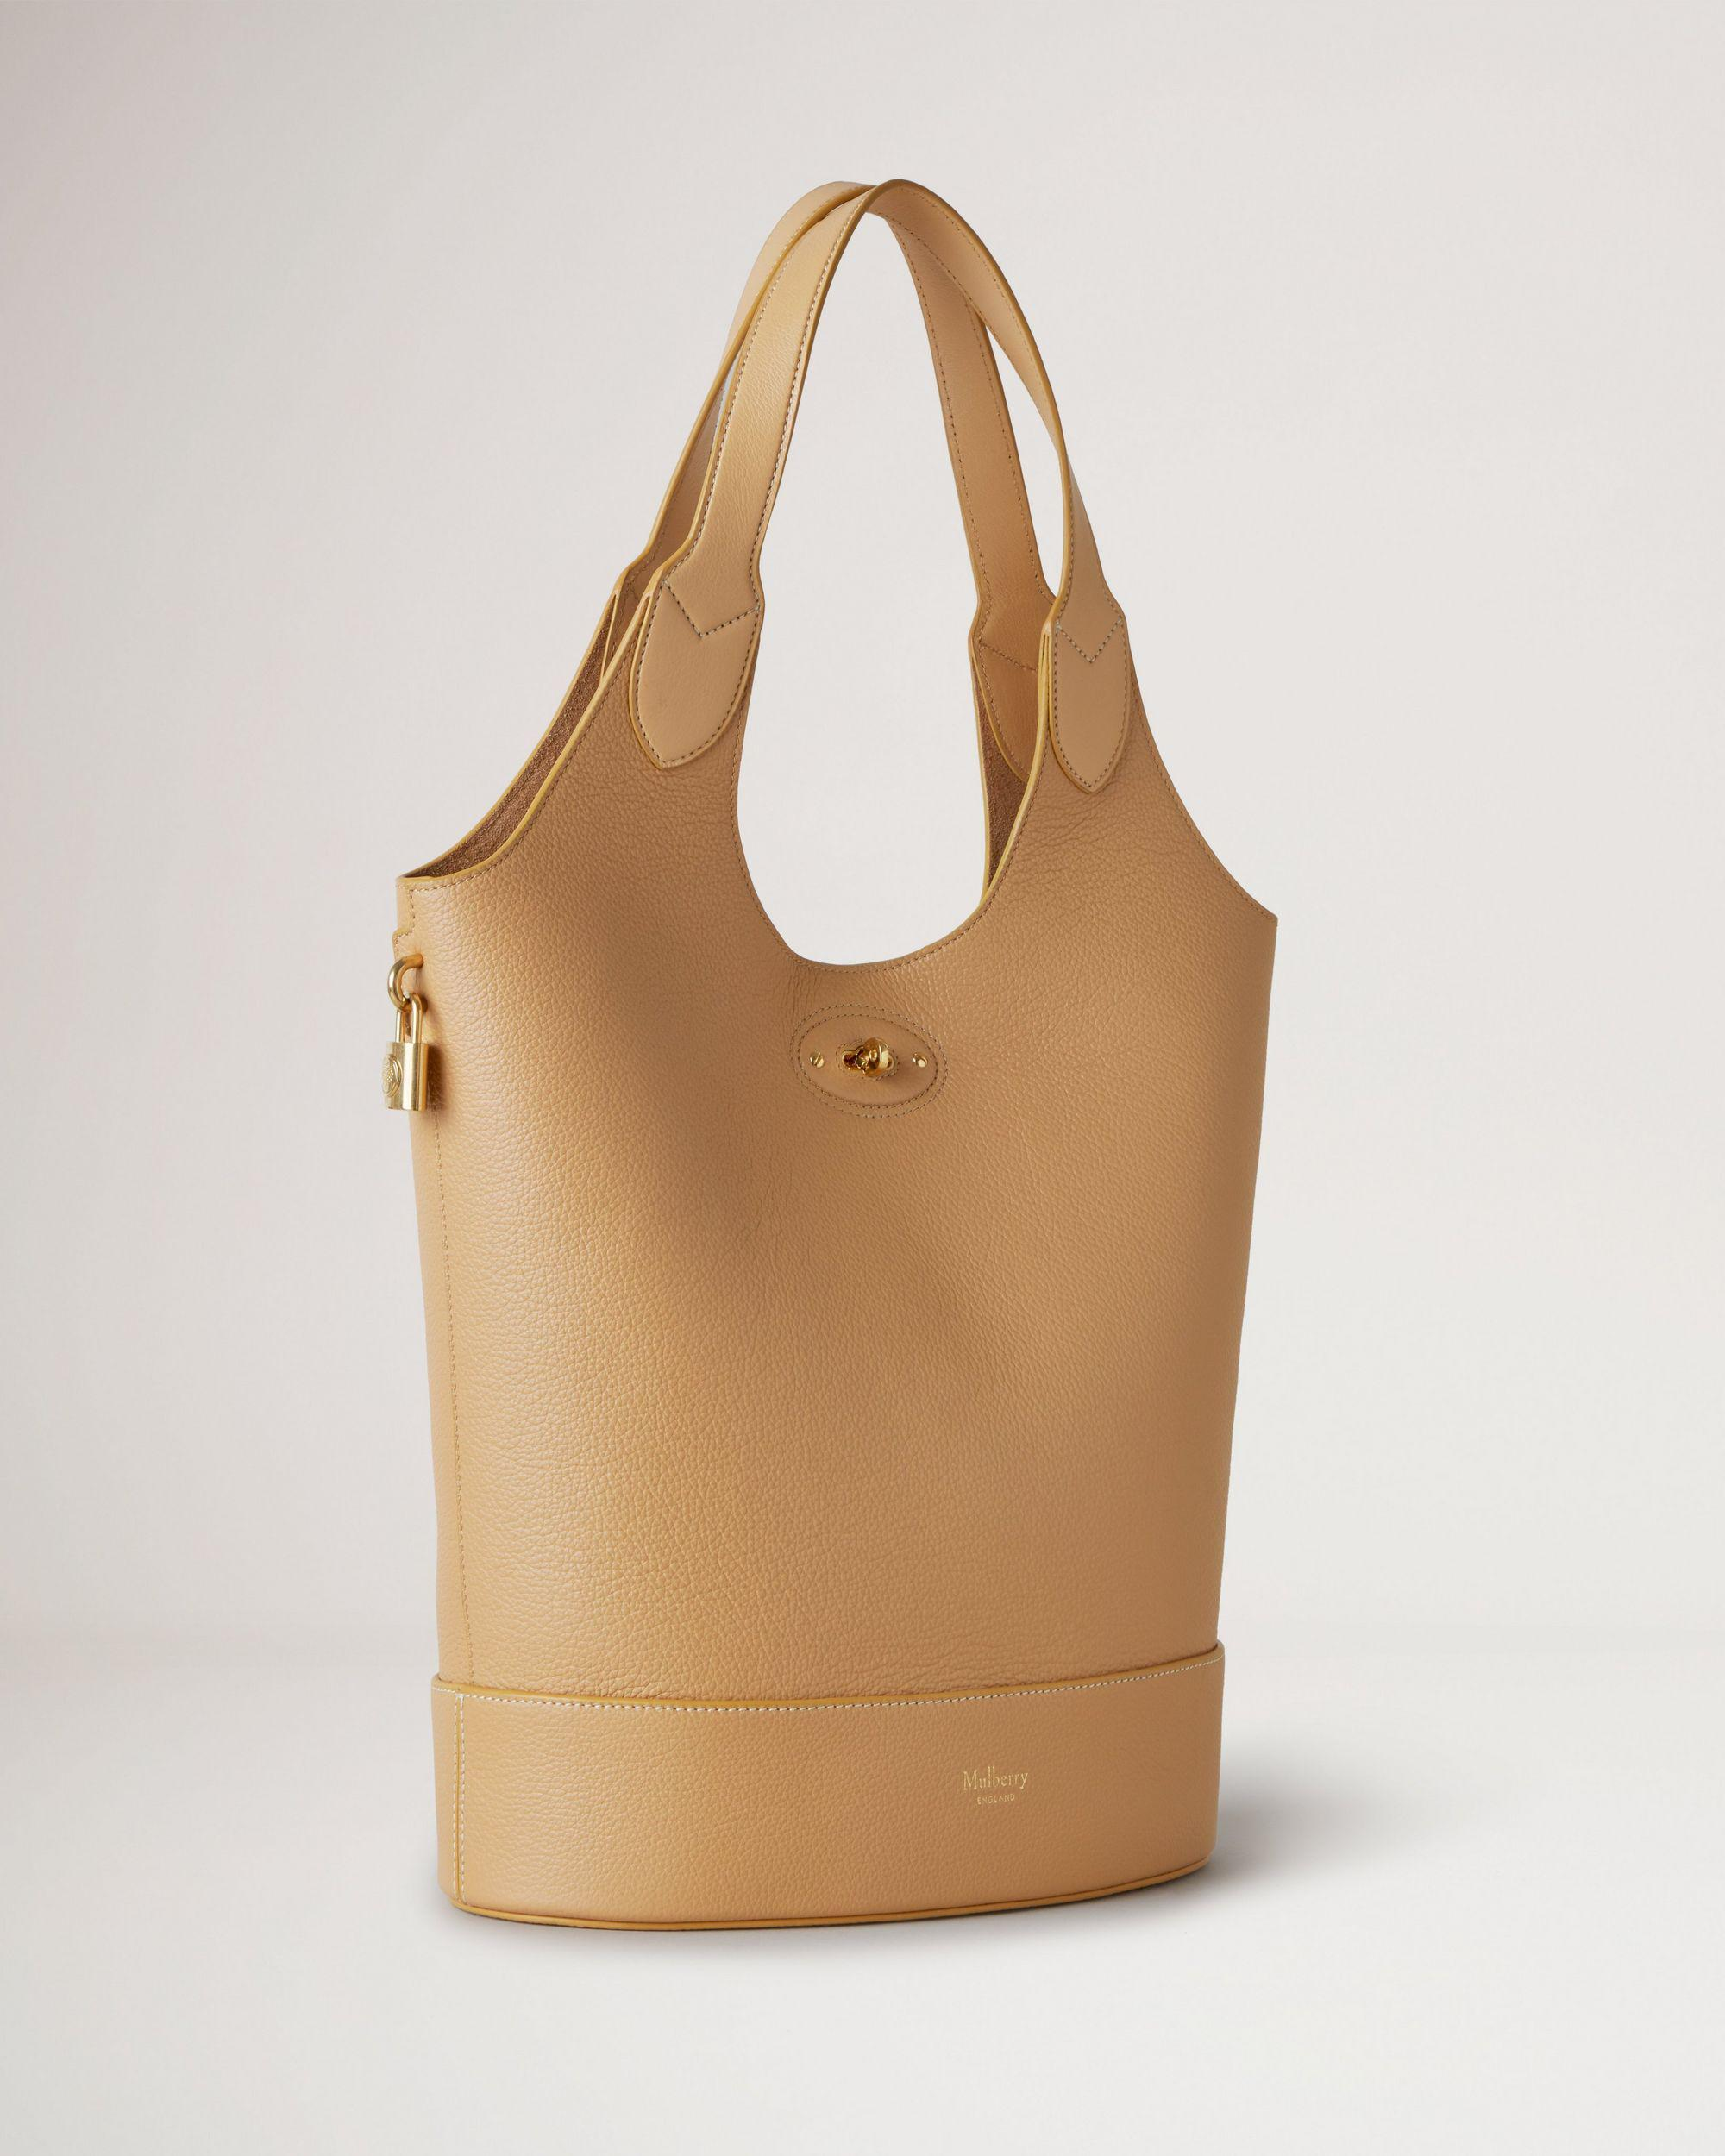 Lily Tote 2